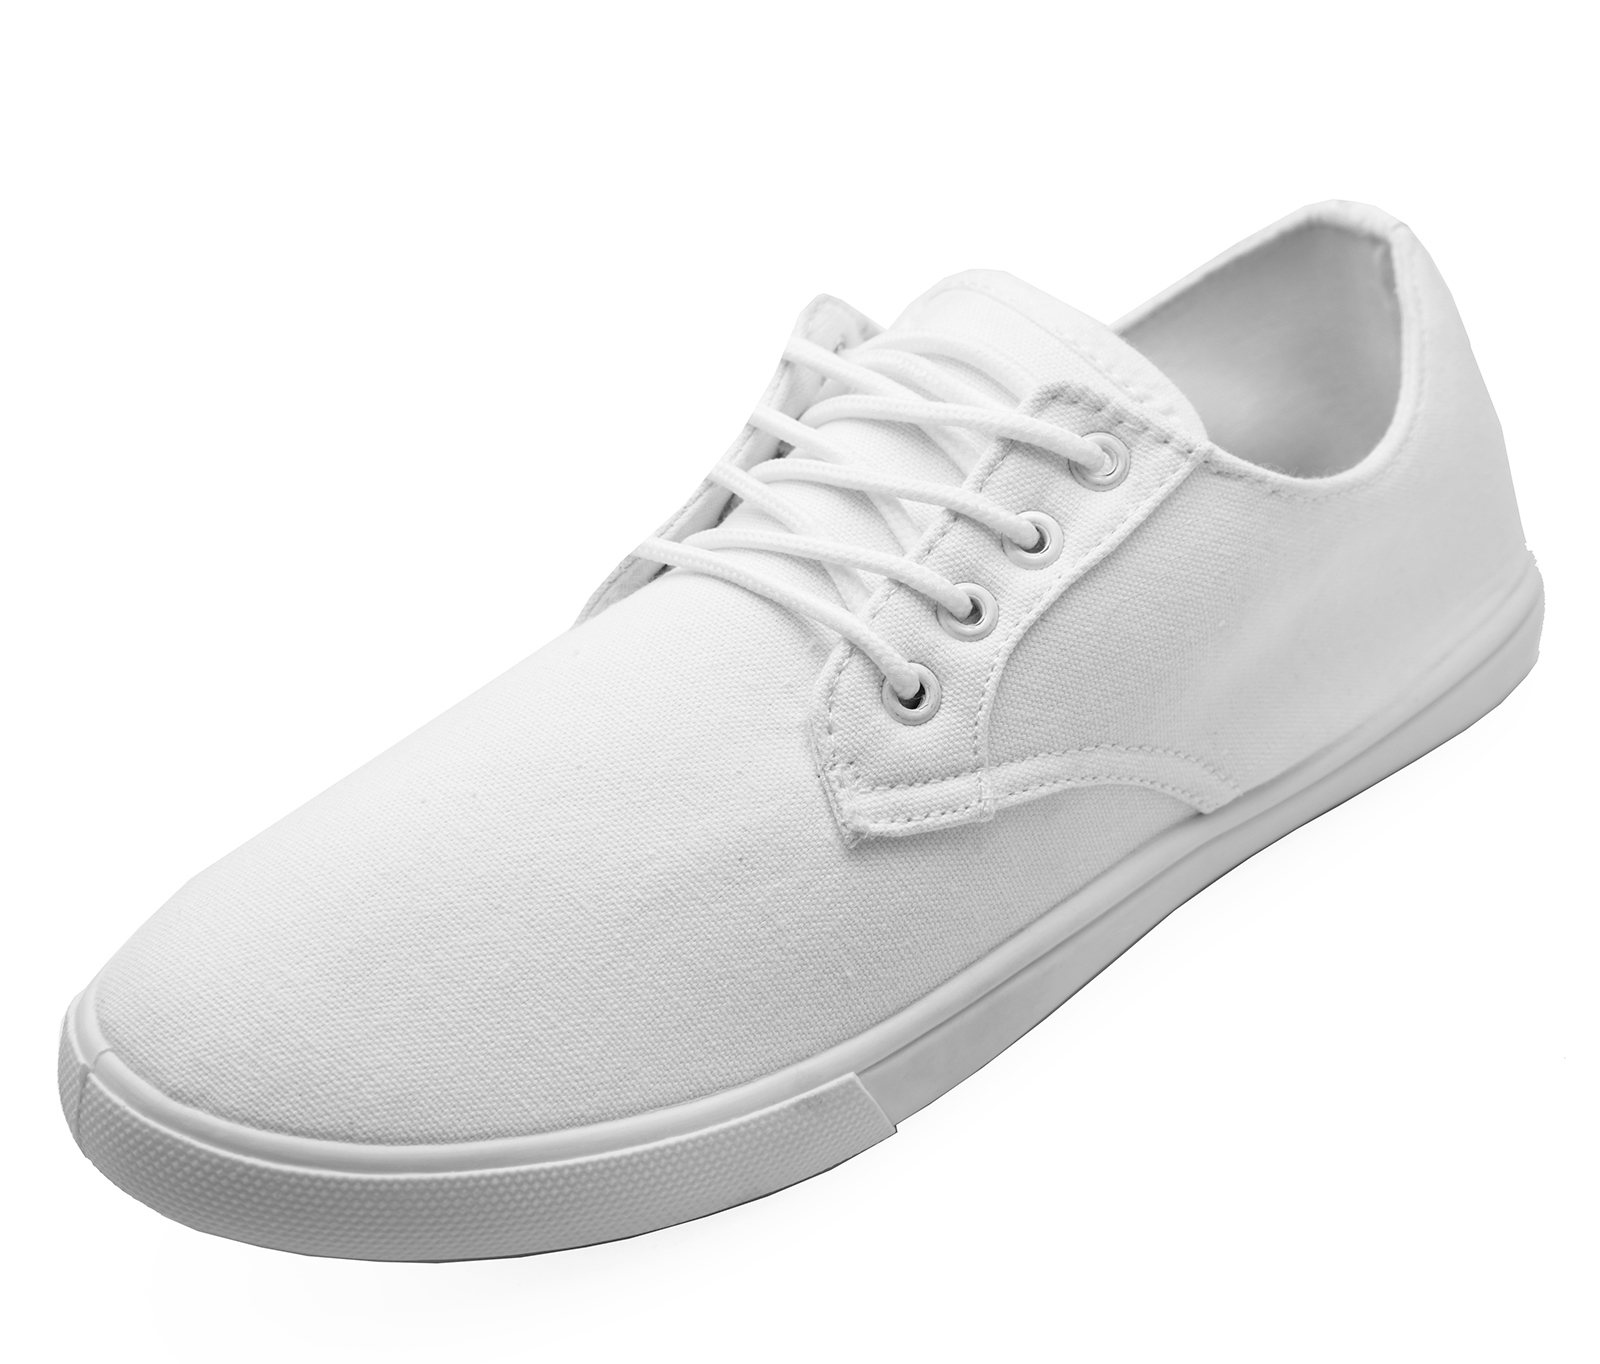 MENS-LACE-UP-WHITE-CANVAS-FLAT-TRAINER-PLIMSOLL-PUMPS-CASUAL-SHOES-SIZES-6-12 thumbnail 13